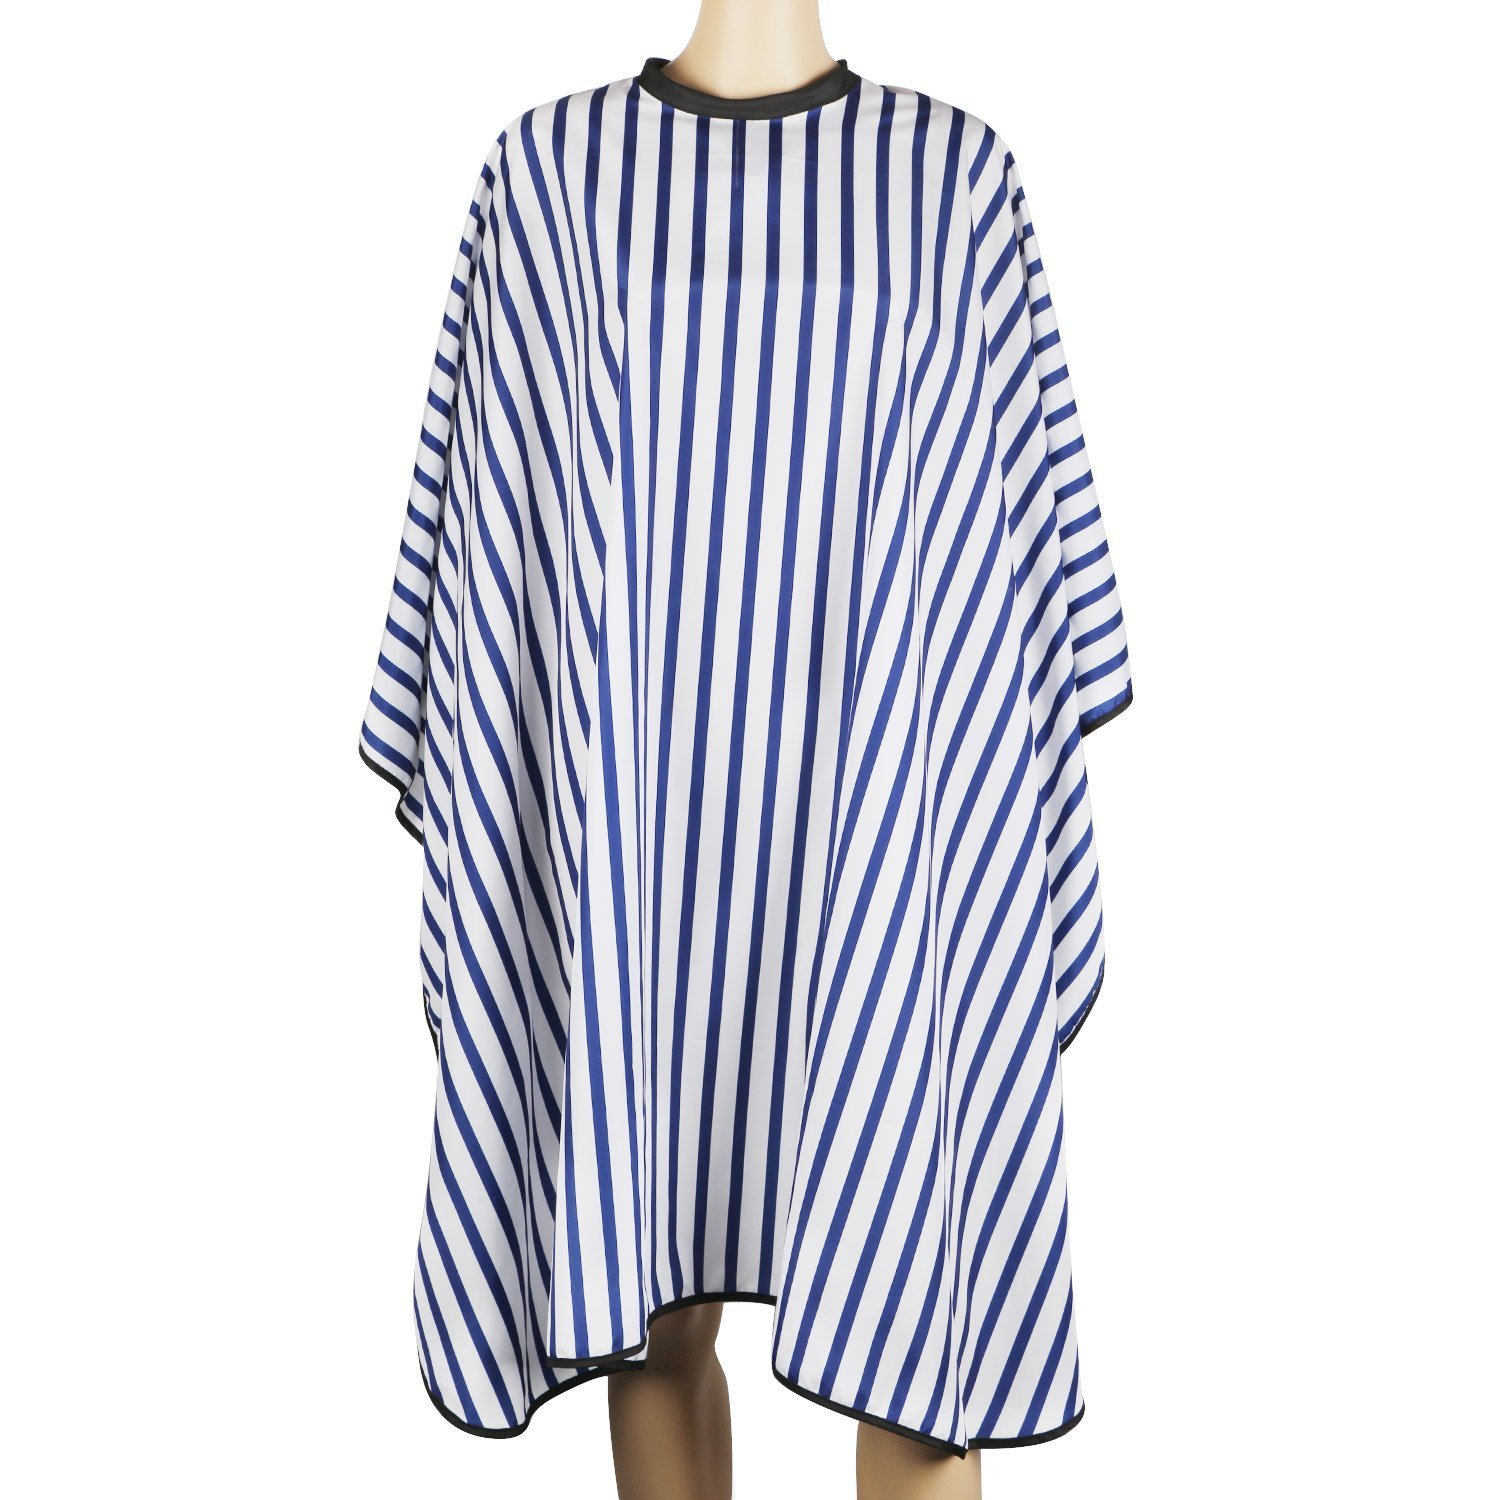 Segbeauty® Blue Striped Hair Cutting Cape for Salon, Waterproof Hairdressing Gown 4.5 Closure Make-up Cape, Silky Long Cloth Wrap for Barber